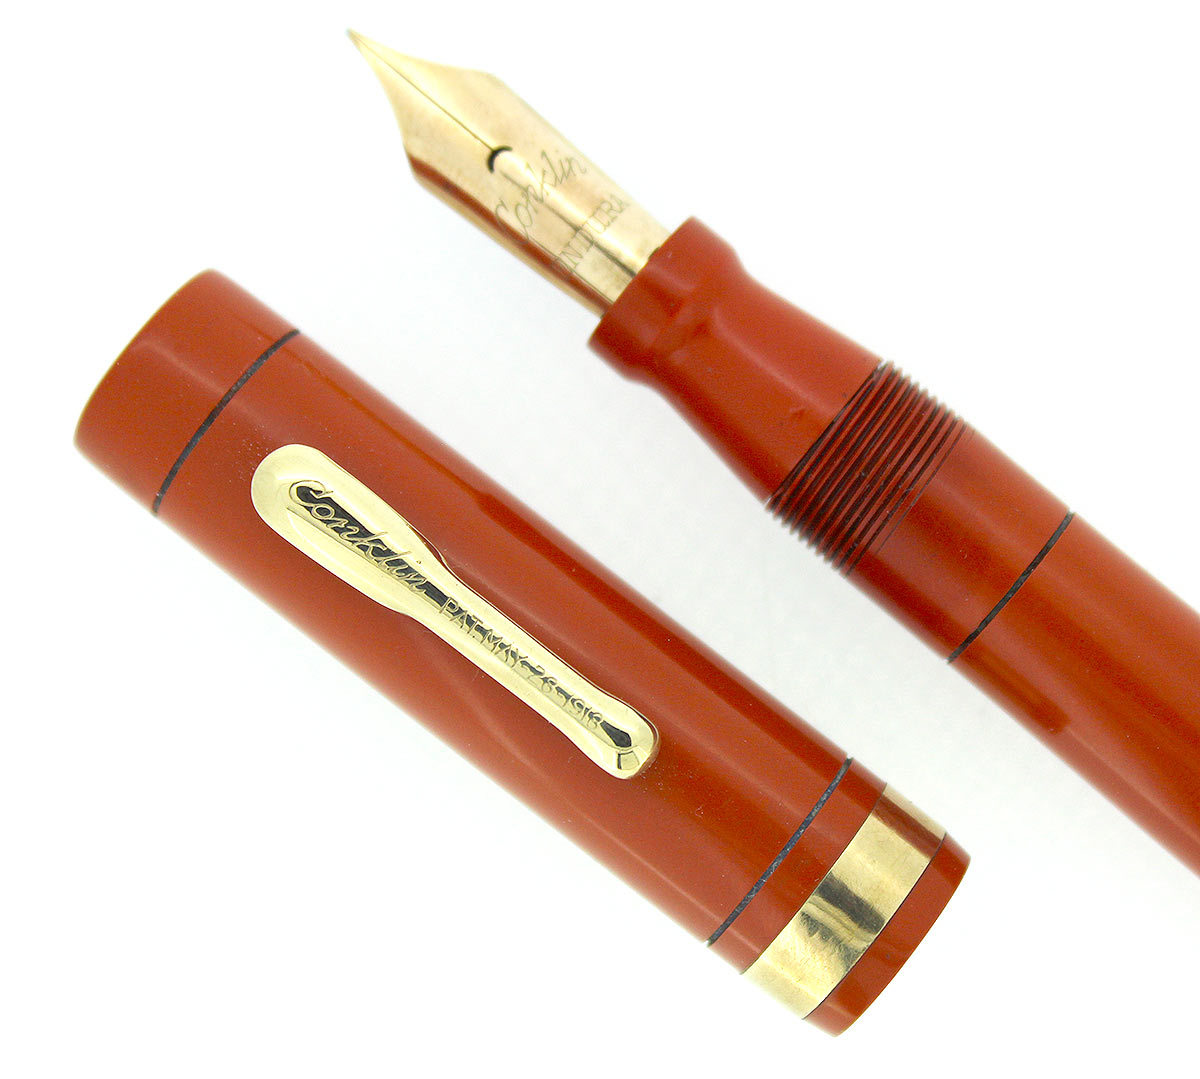 CIRC 1925 CONKLIN SENIOR ENDURA RED HARD RUBBER FOUNTAIN PEN RESTORED OFFERED BY ANTIQUE DIGGER